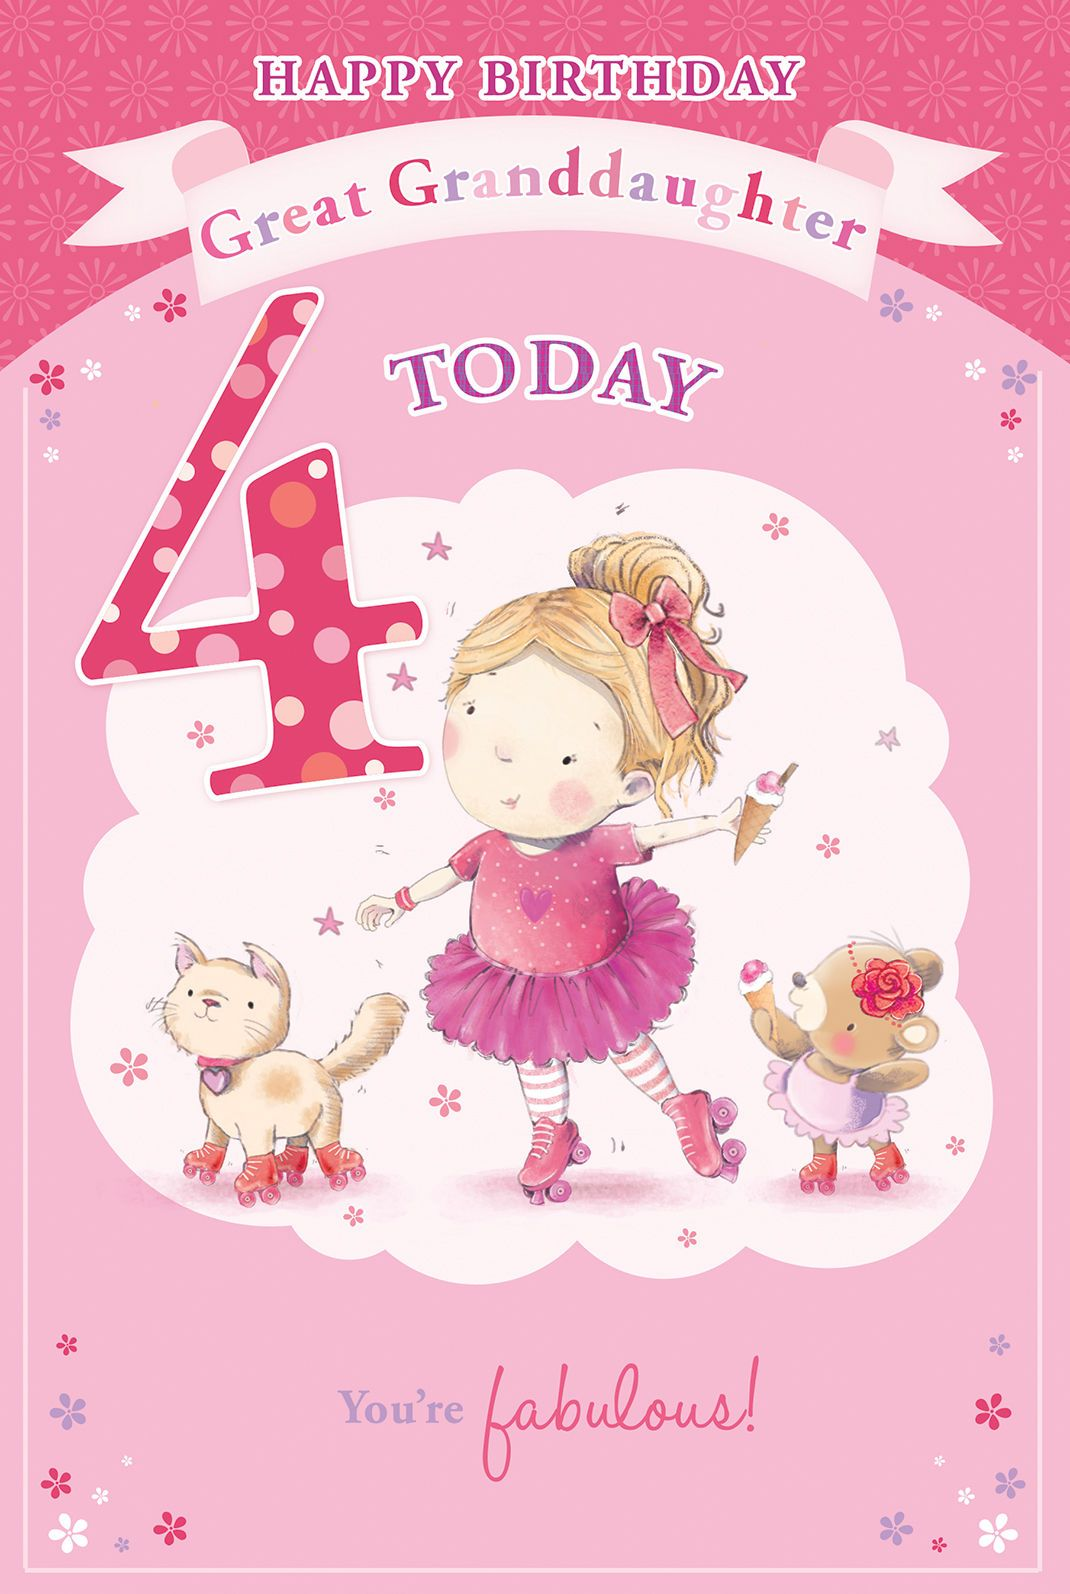 Great Granddaughter 4th Birthday Card Badge 4 Today Girl Balloon 9 X 6 Birthday Cards Online Greeting Cards 4th Birthday